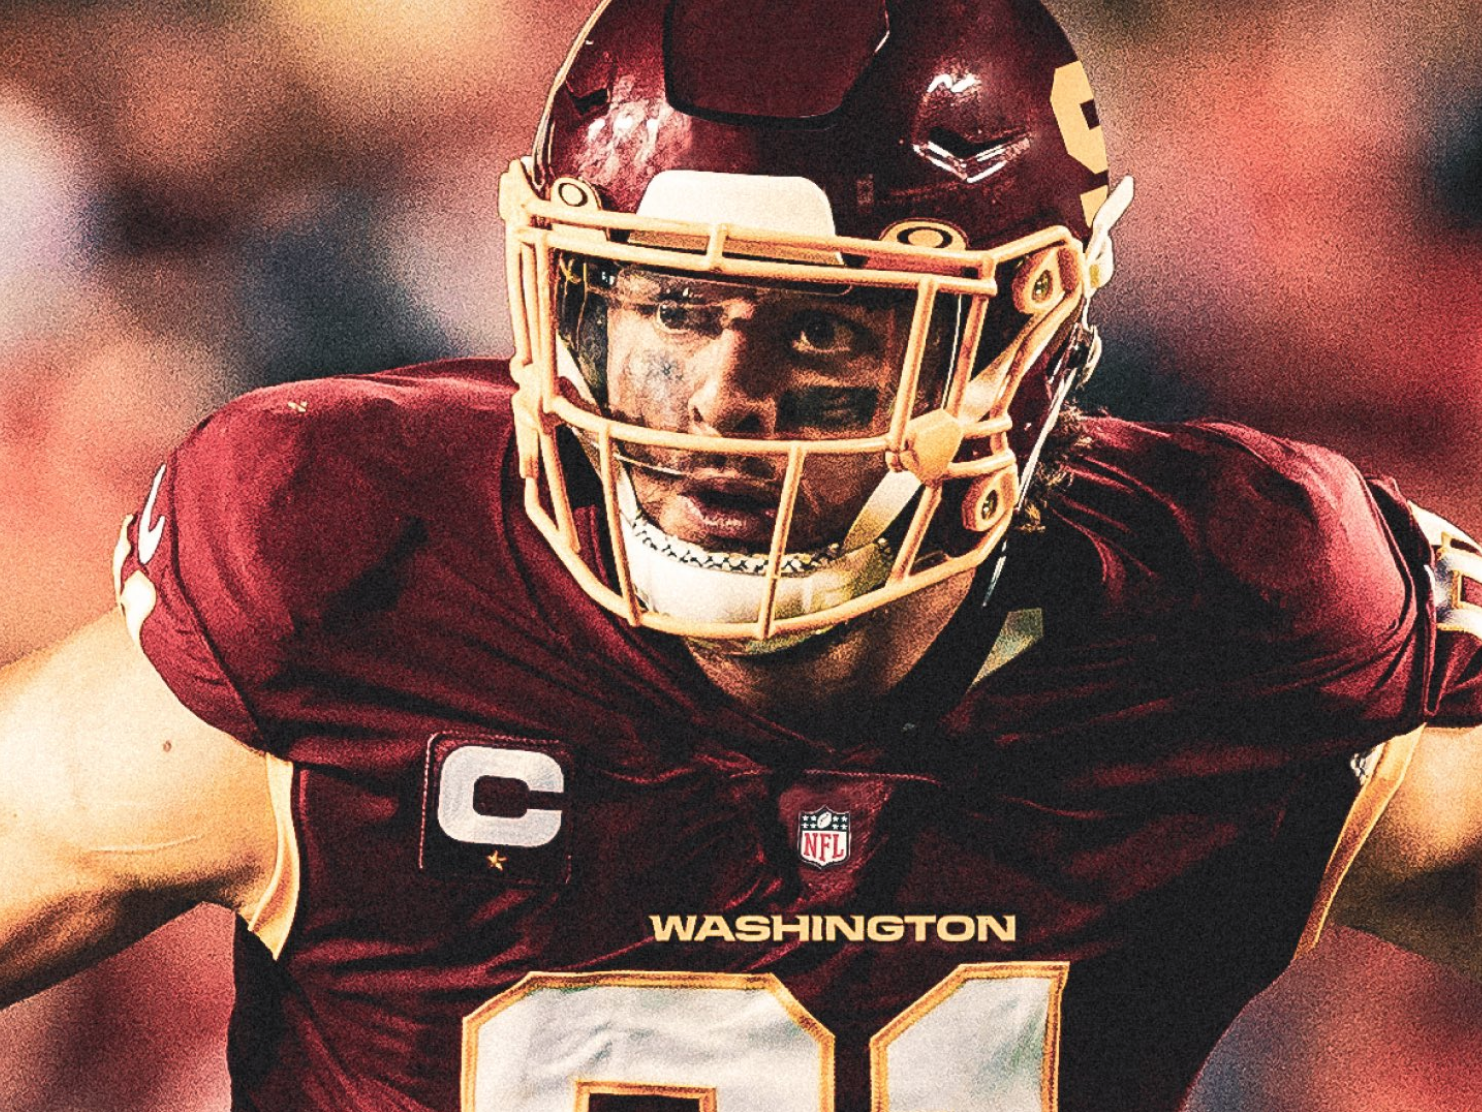 Washington Redskins Confirm New Name The Independent The Independent